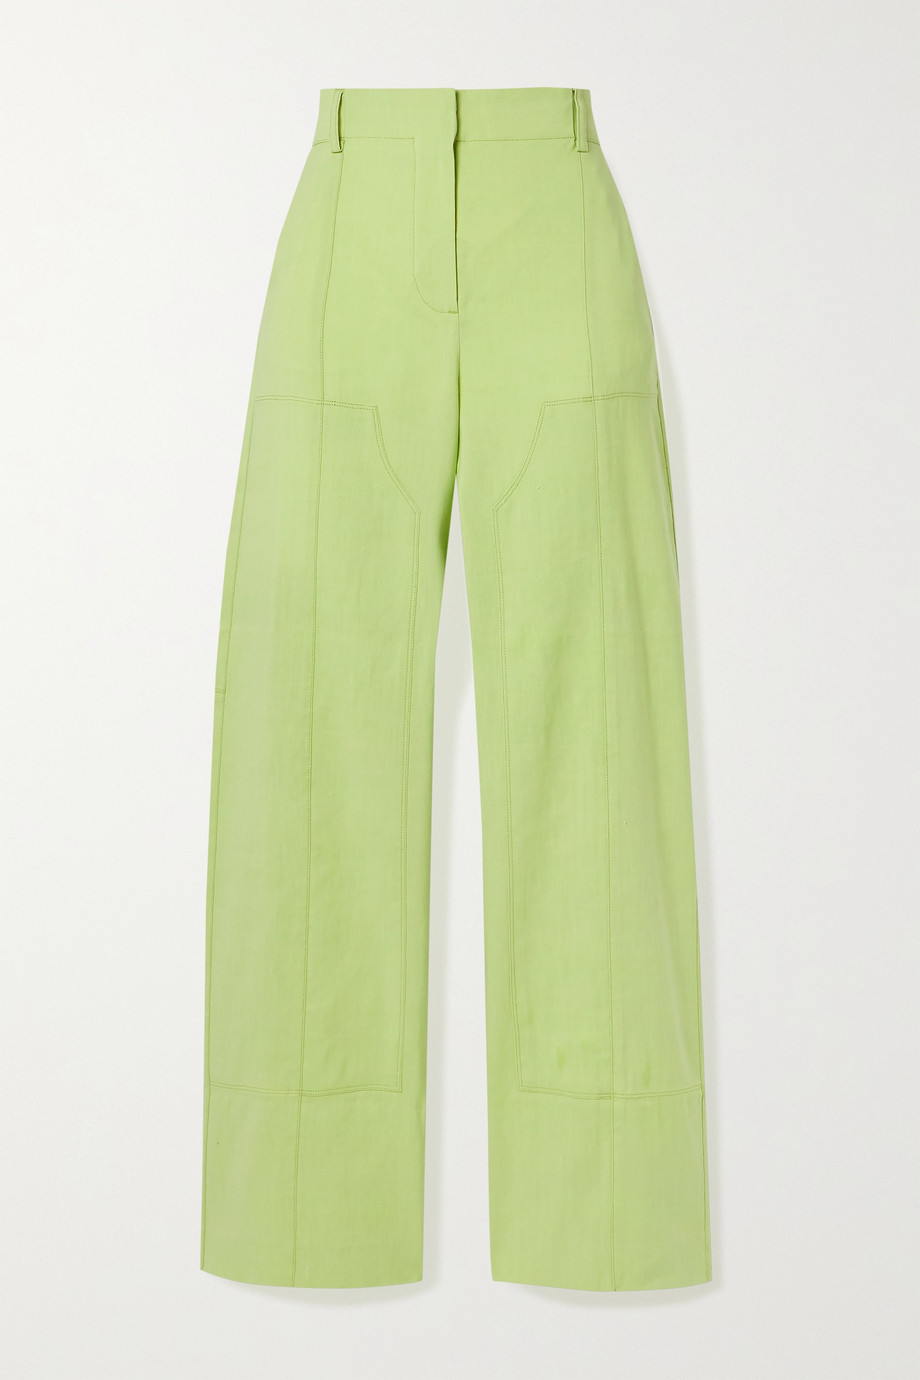 Jacquemus Estero hemp-blend straight-leg pants